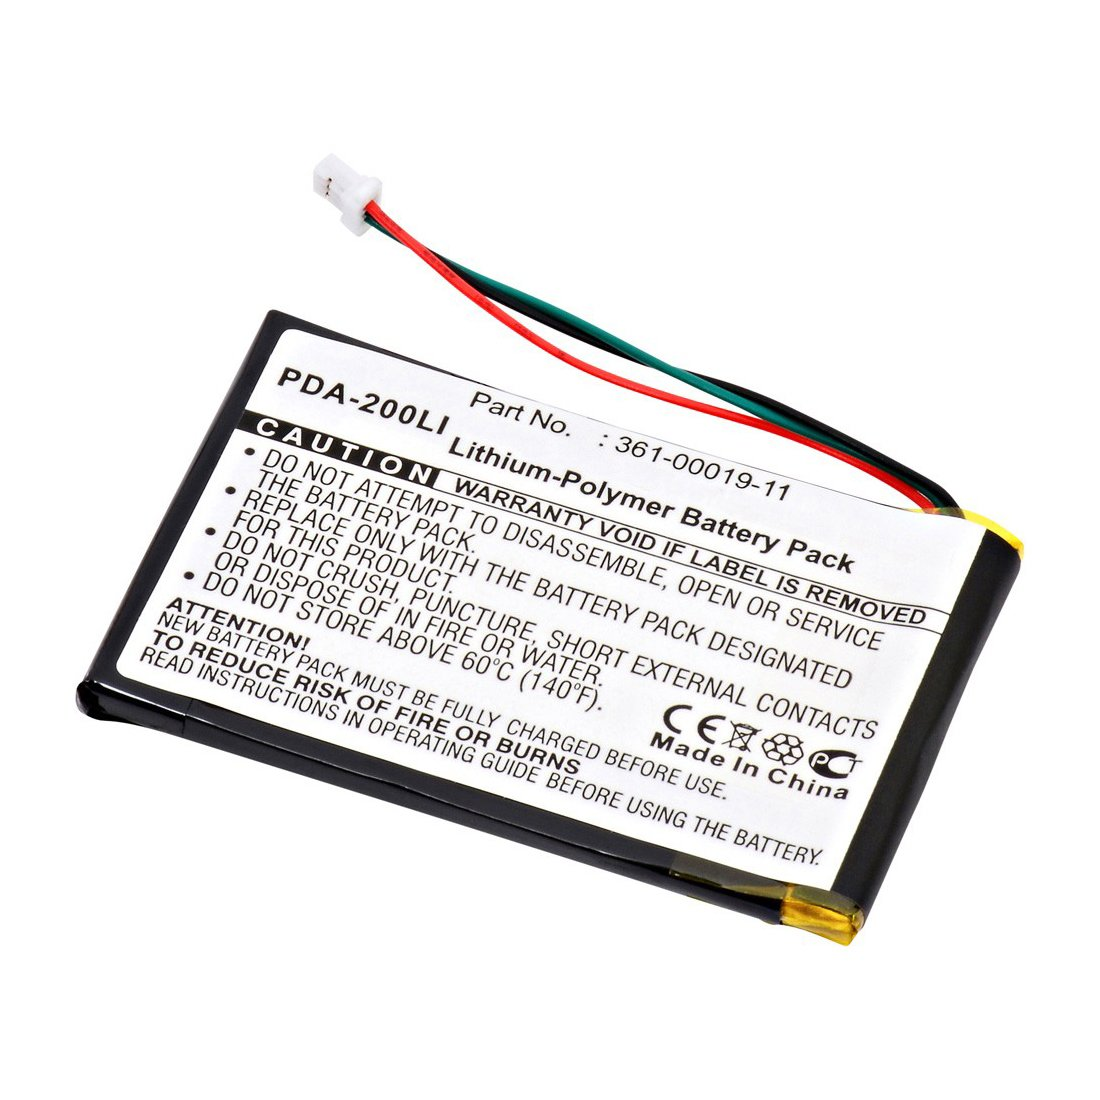 Garmin Nuvi 200 Replacement Battery Batterymart